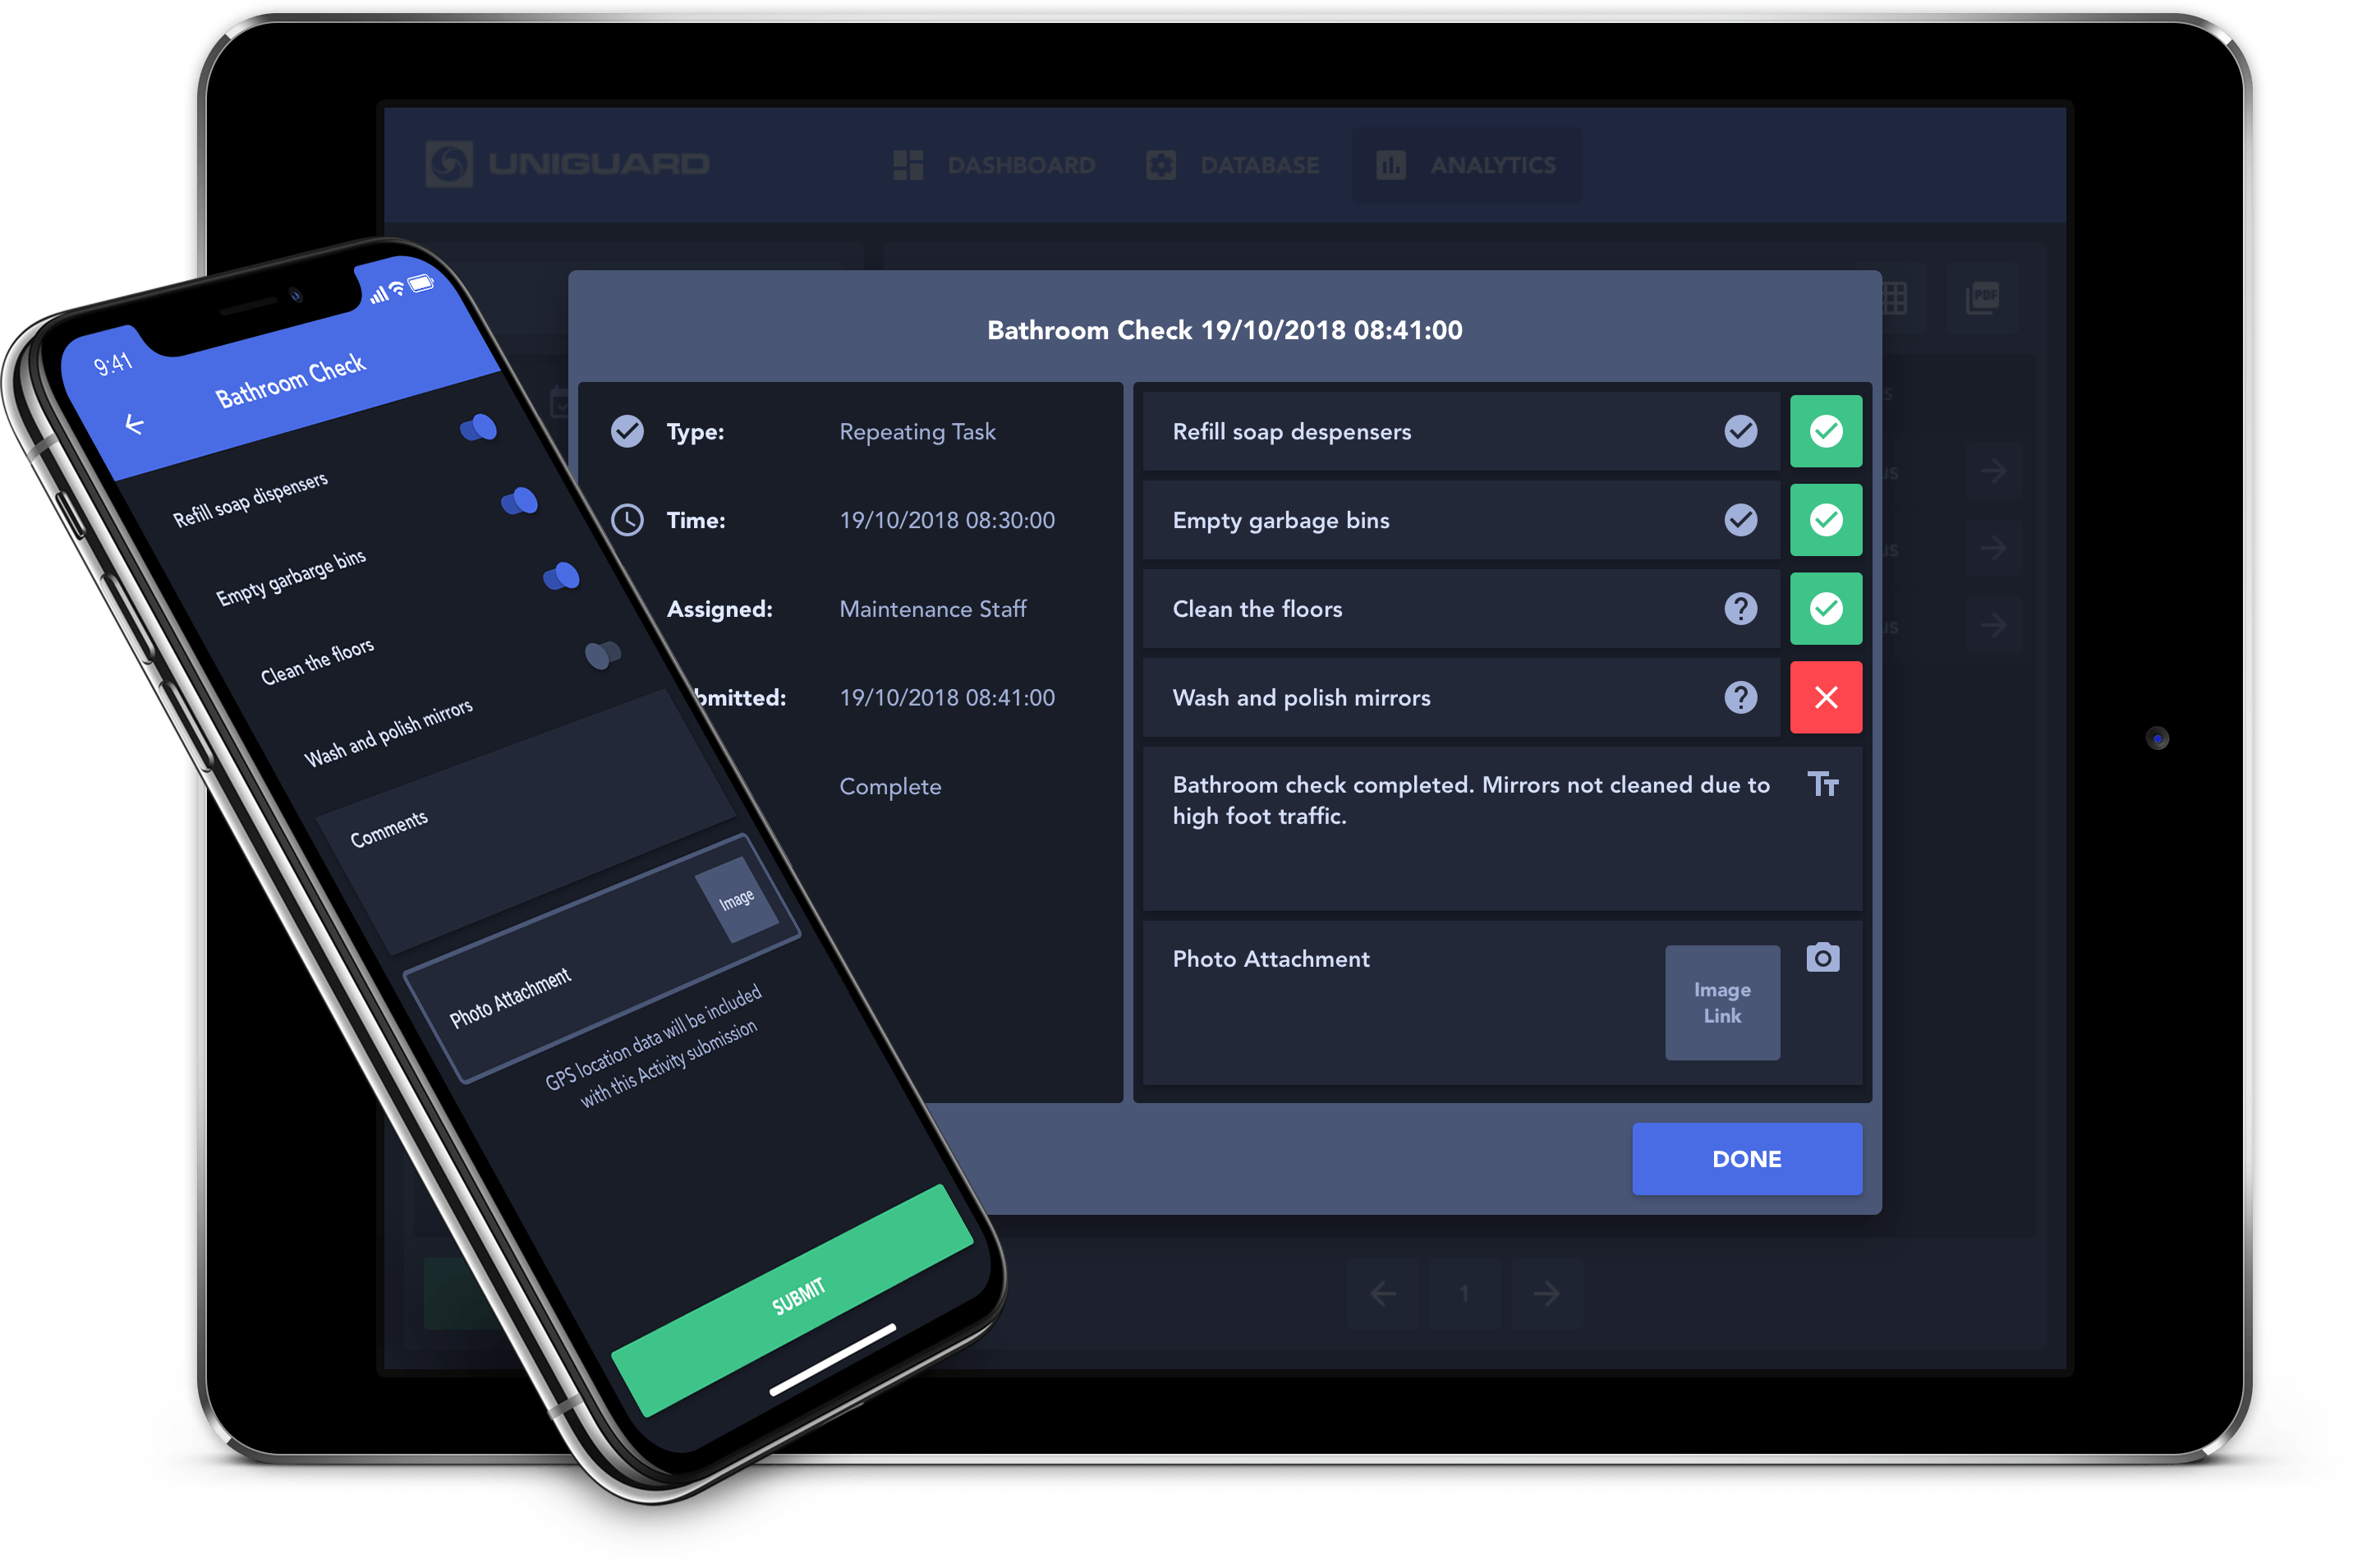 UniGuard Task Dispatch Web & Mobile